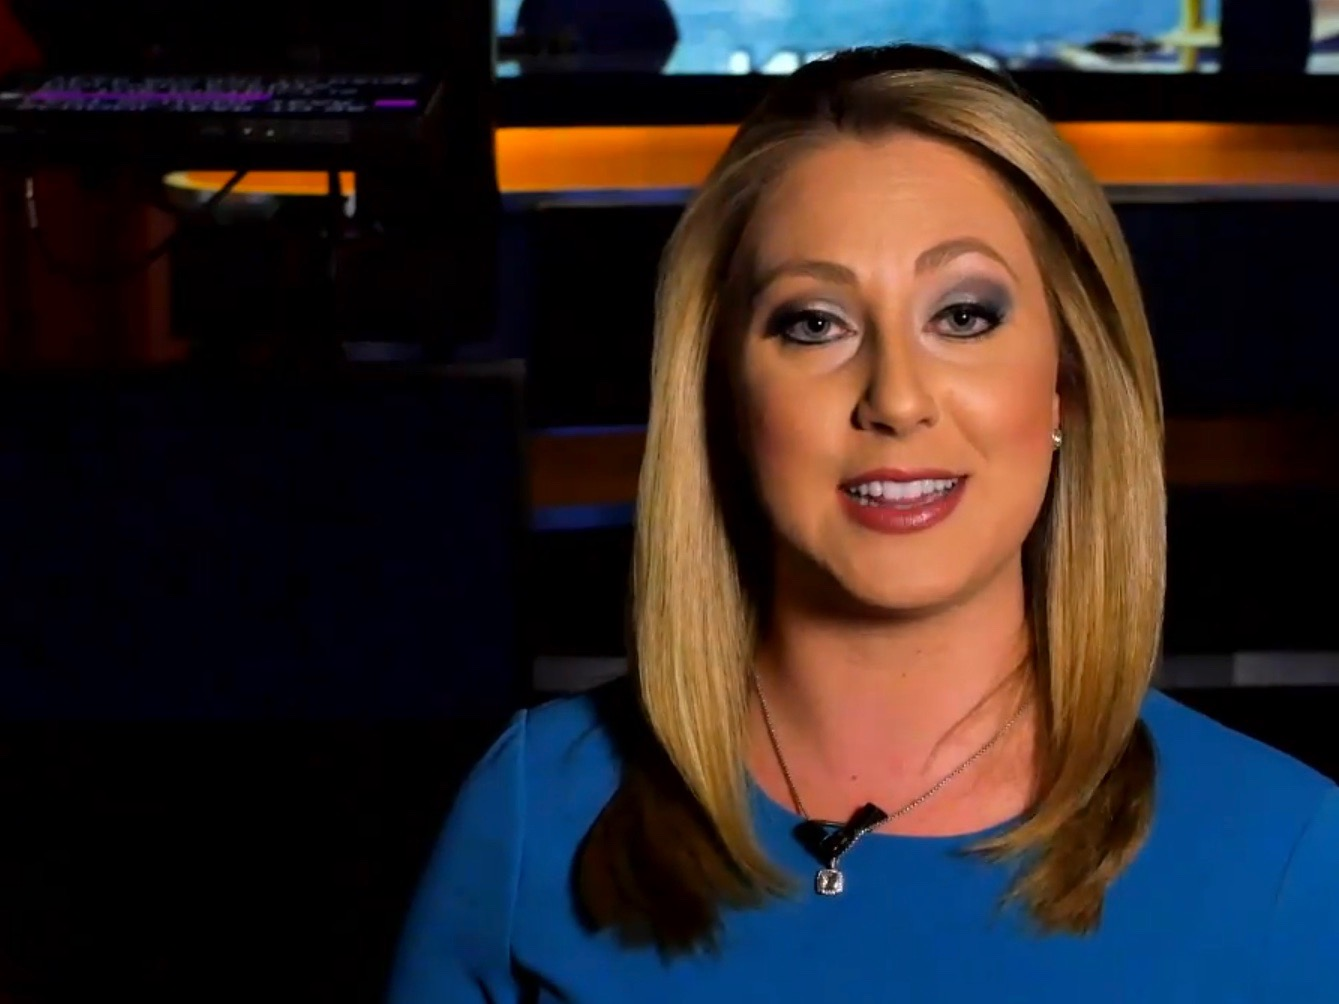 Myrtle Beach Anchor On Working While Coping With Autoimmune Disease